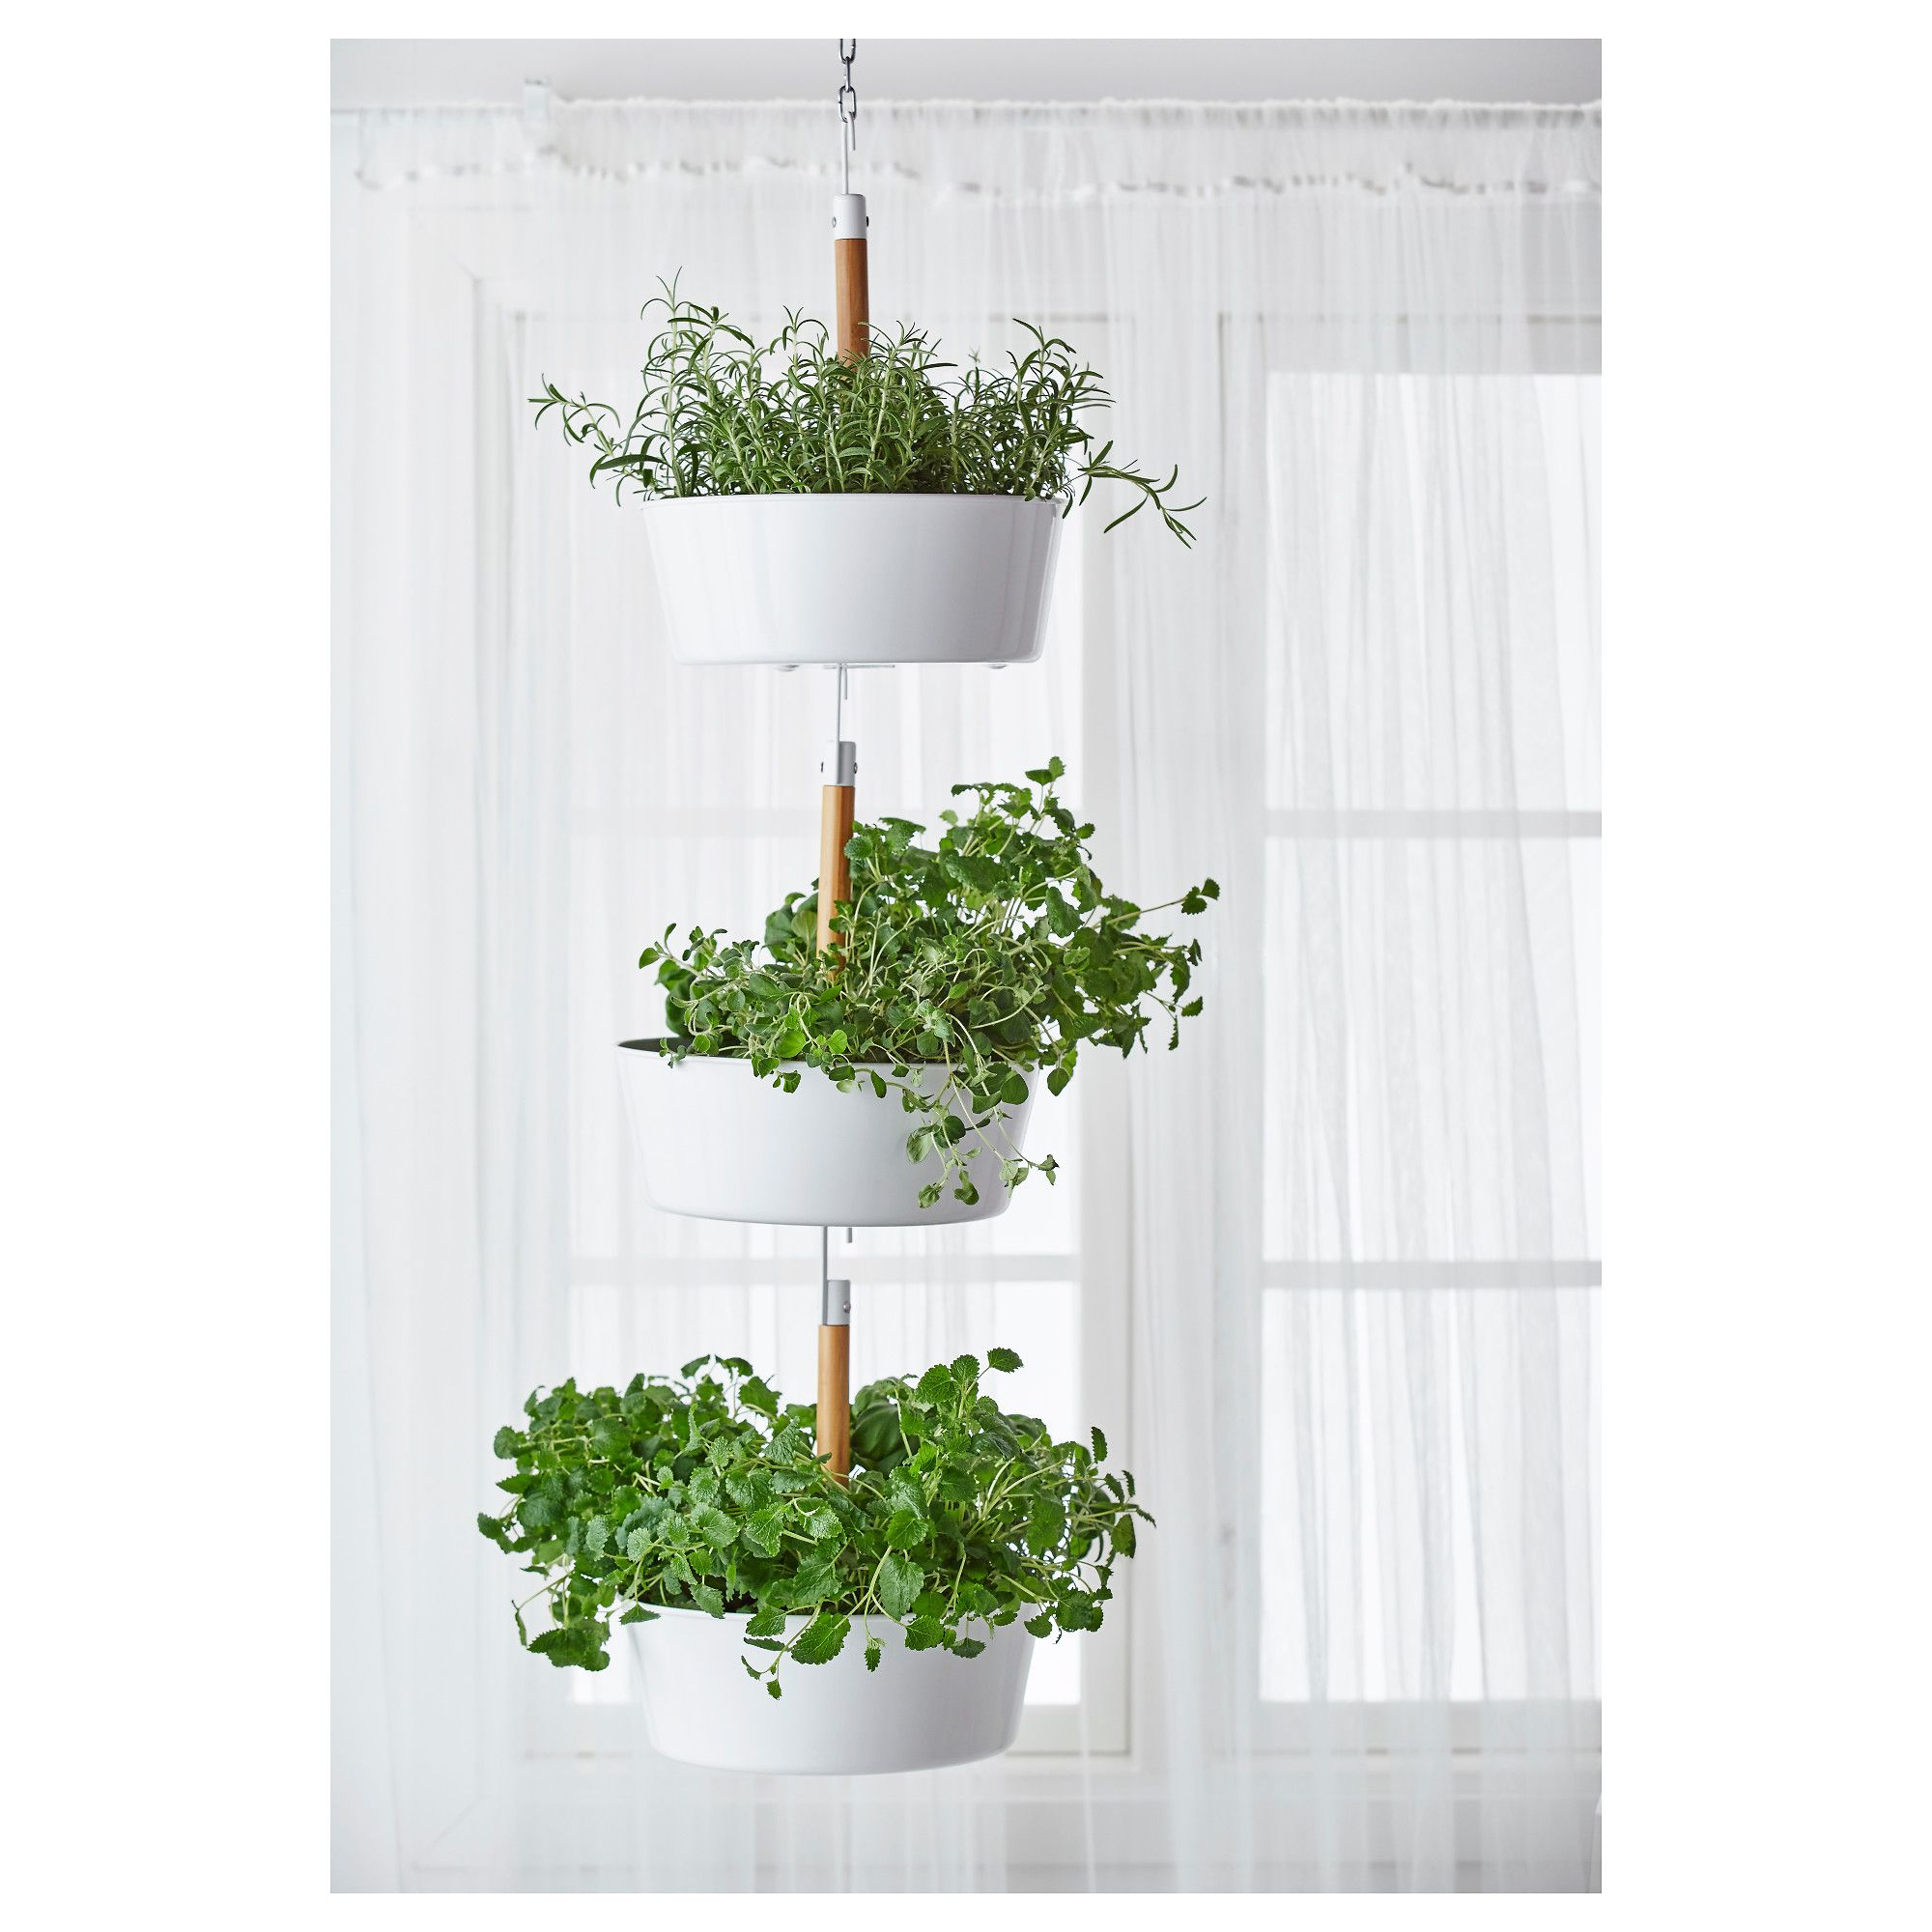 Hanging Indoor Herb Garden Bittergurka Hanging Planter White In 2018 Kitchen